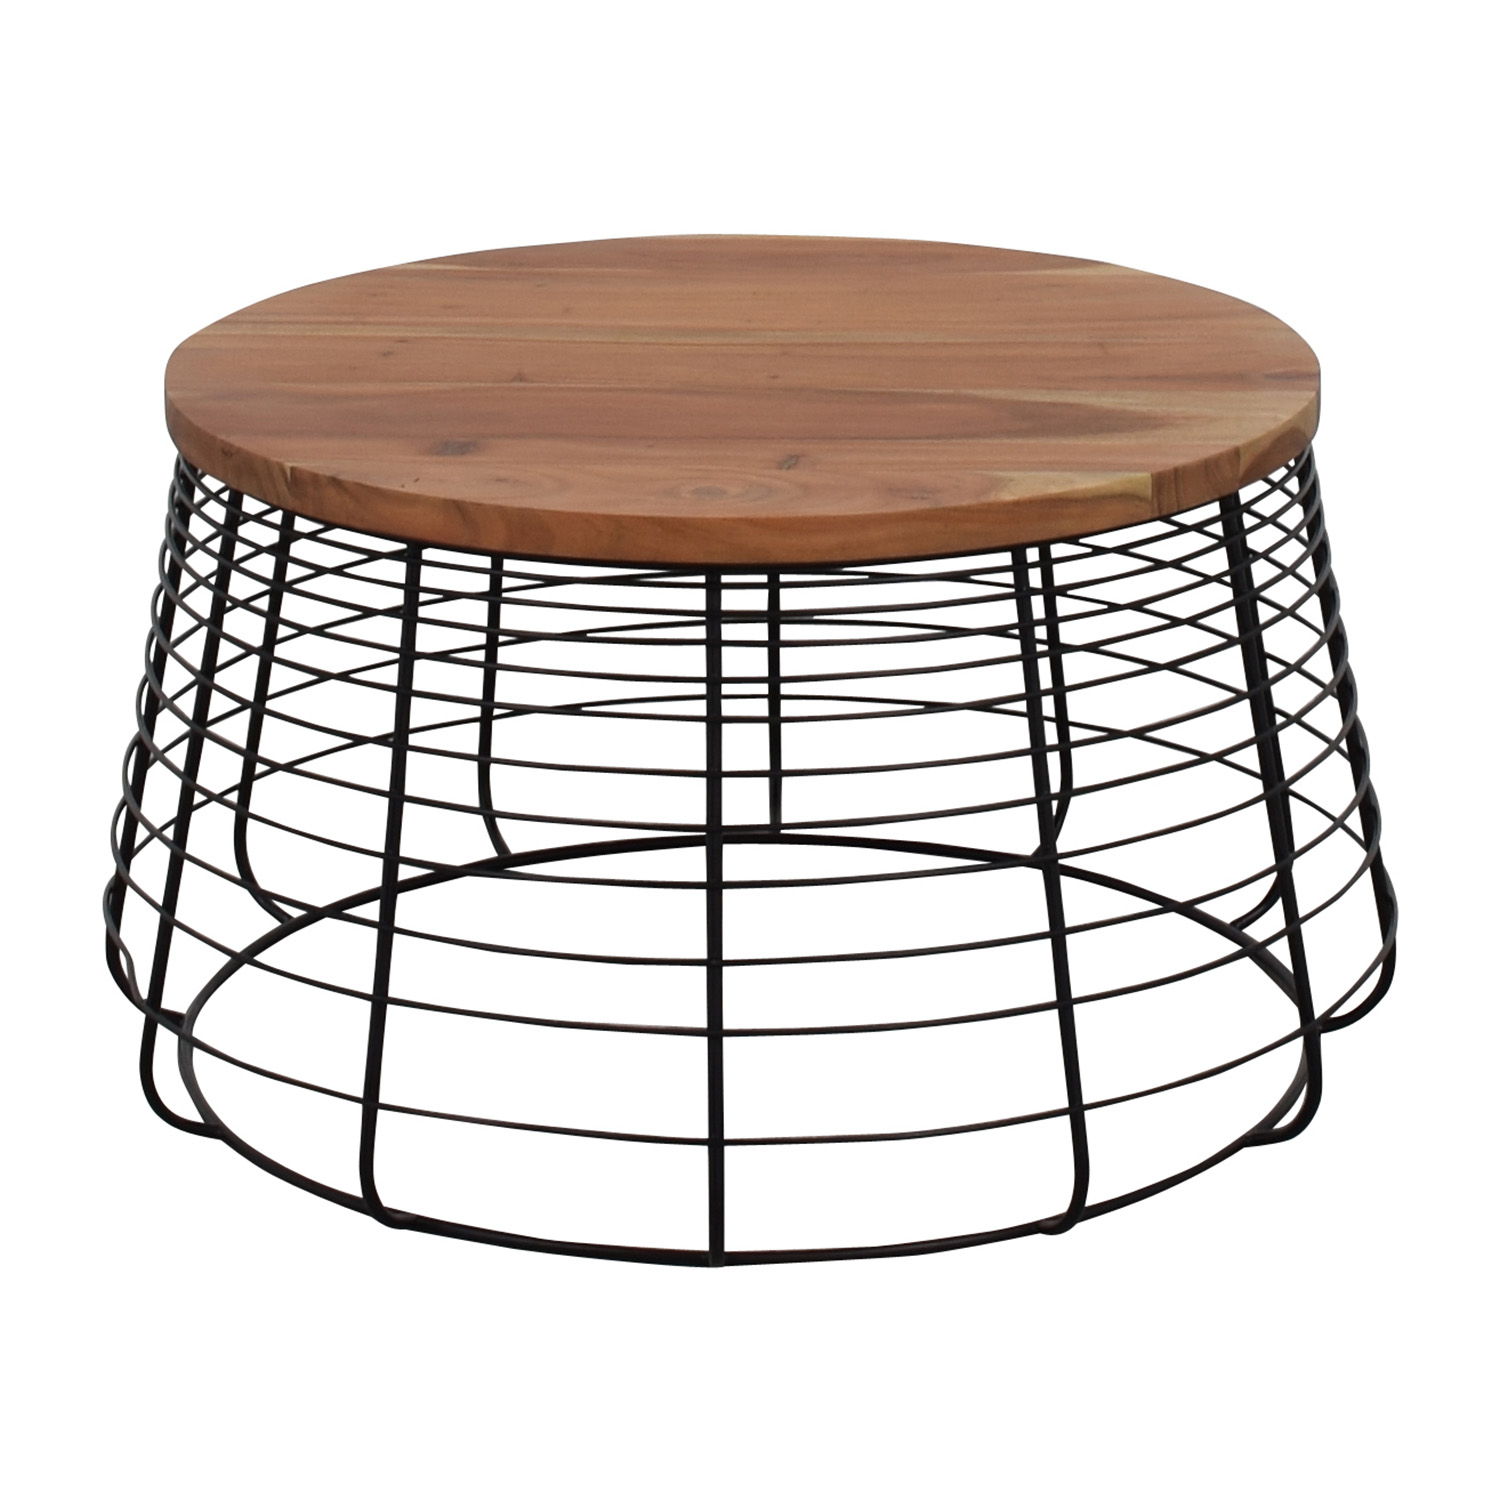 CB2 CB2 Round Wire Coffee Table nj